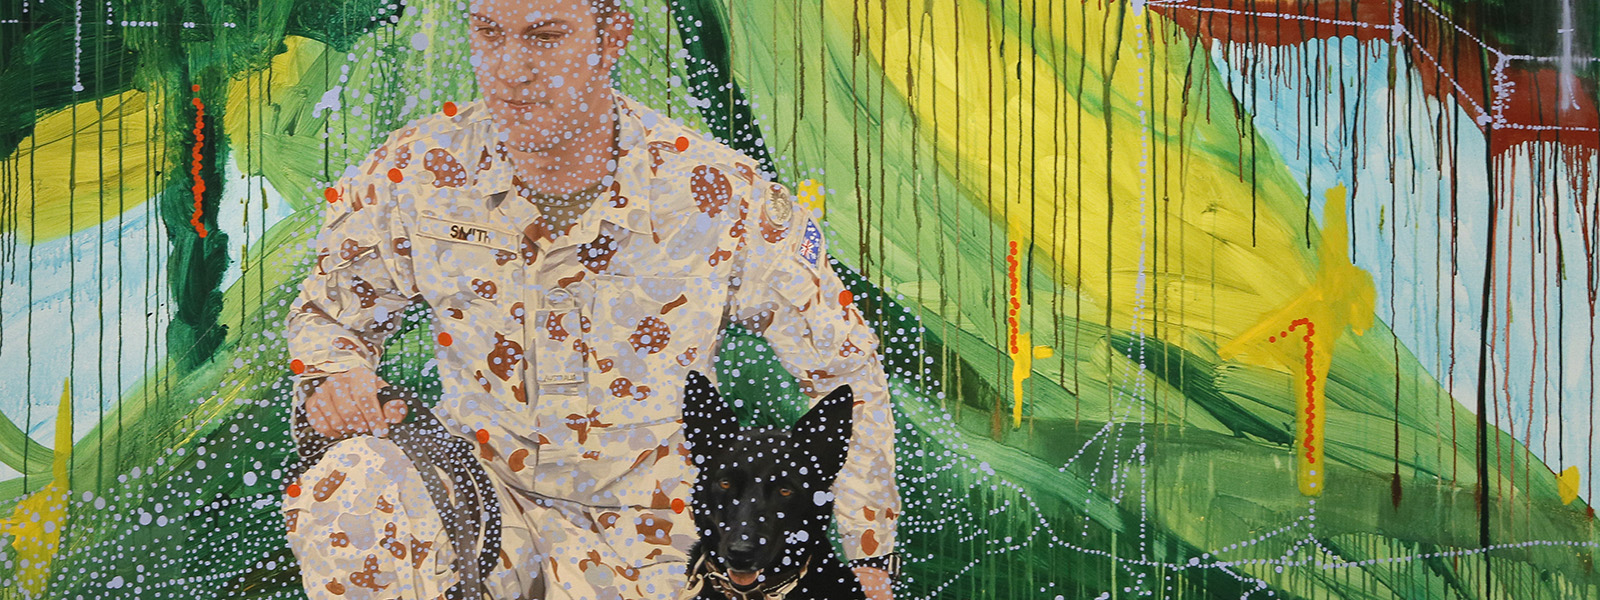 Pierrot (Sarbi) 2014, oil and acrylic on canvas, Lyndell Brown, Charles Green and Jon Cattapan, Shrine of Remembrance Collection